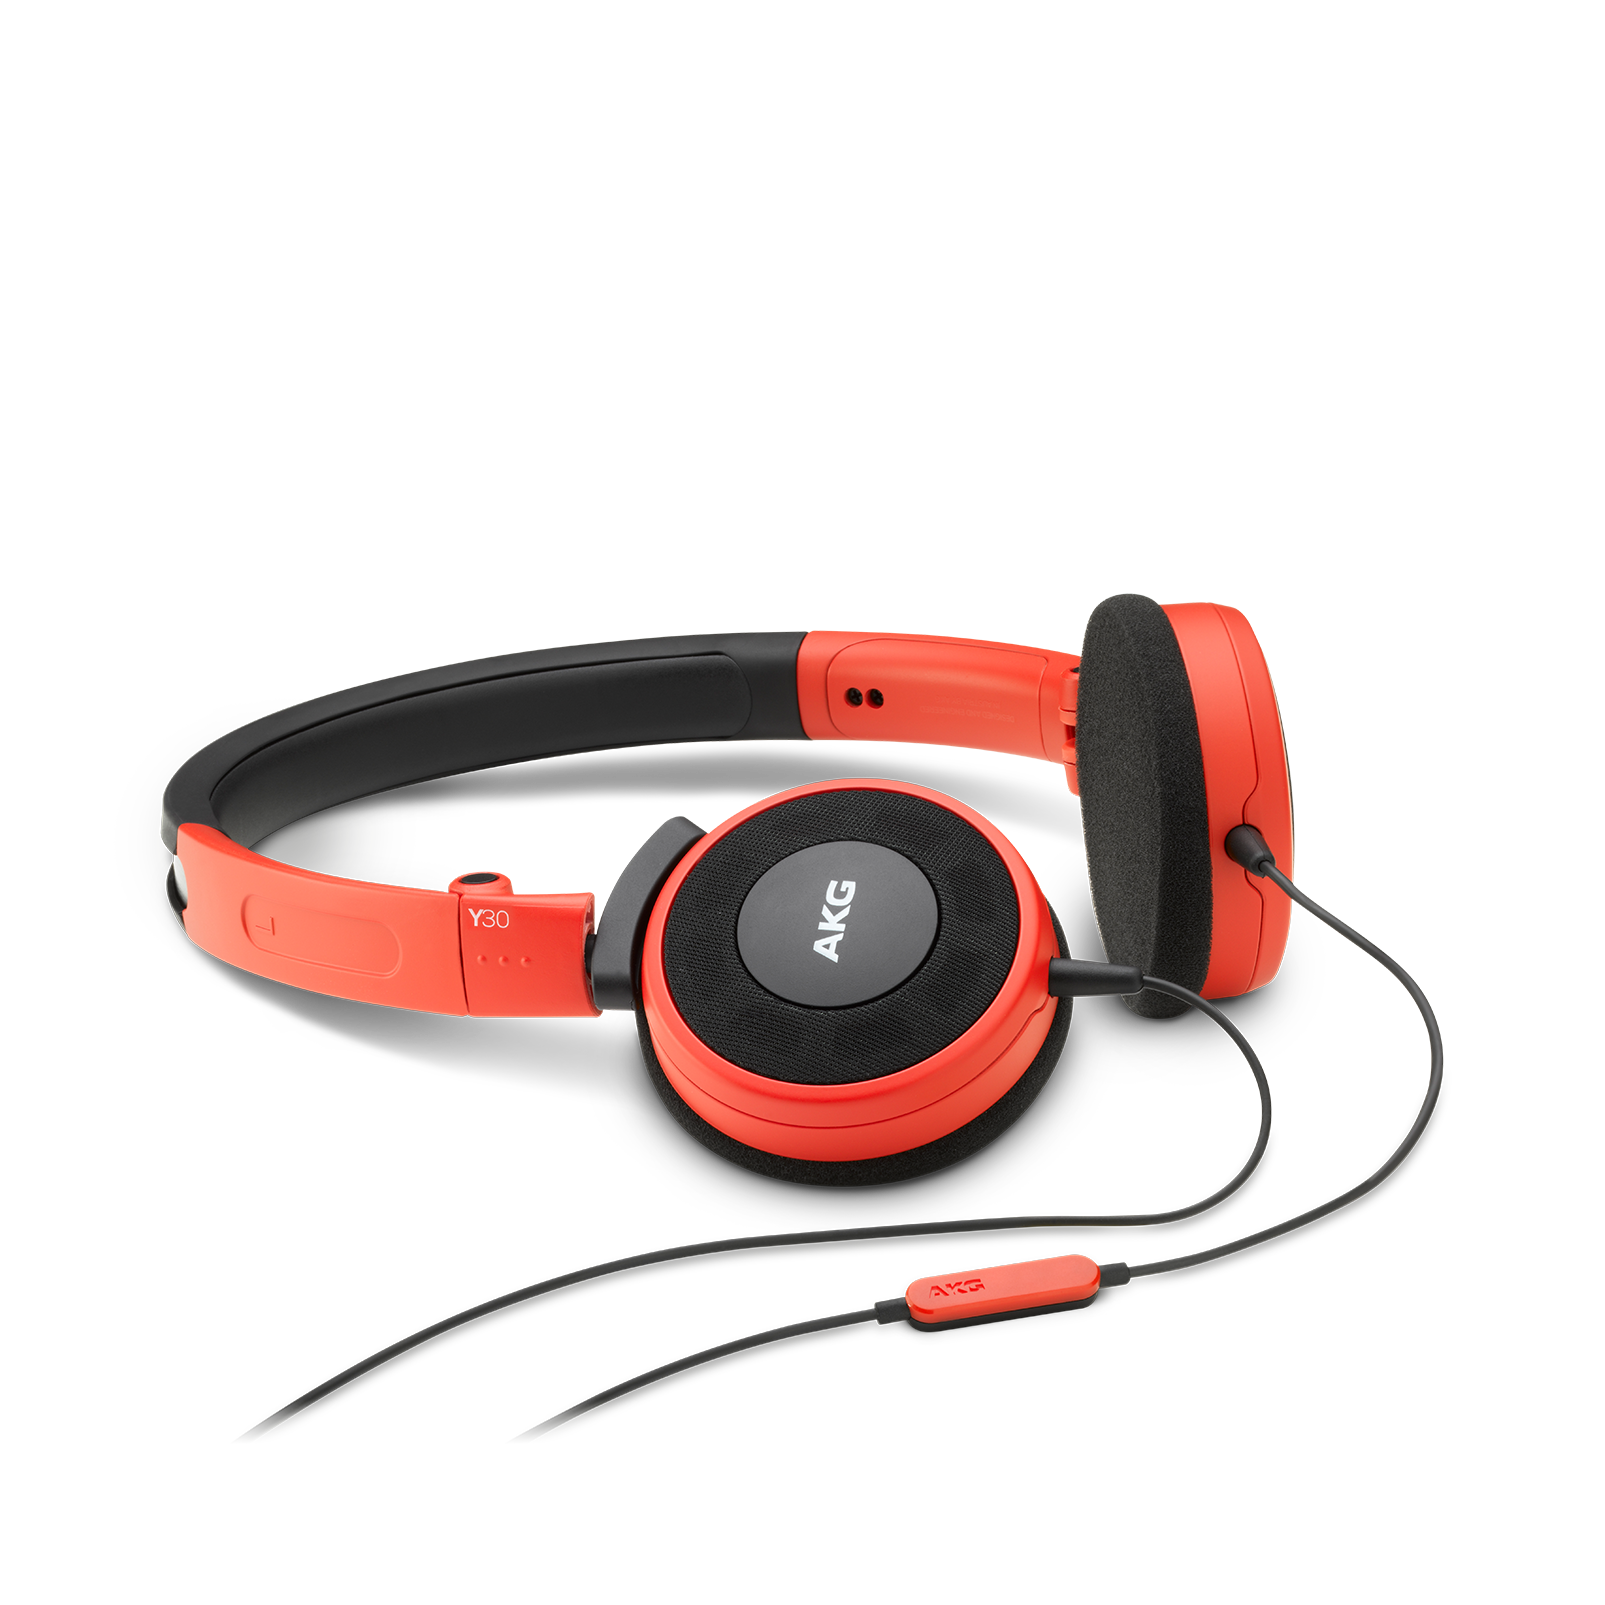 Y 30 - Red - Stylish, uncomplicated, foldable headphones with 1 button universal remote/mic - Hero